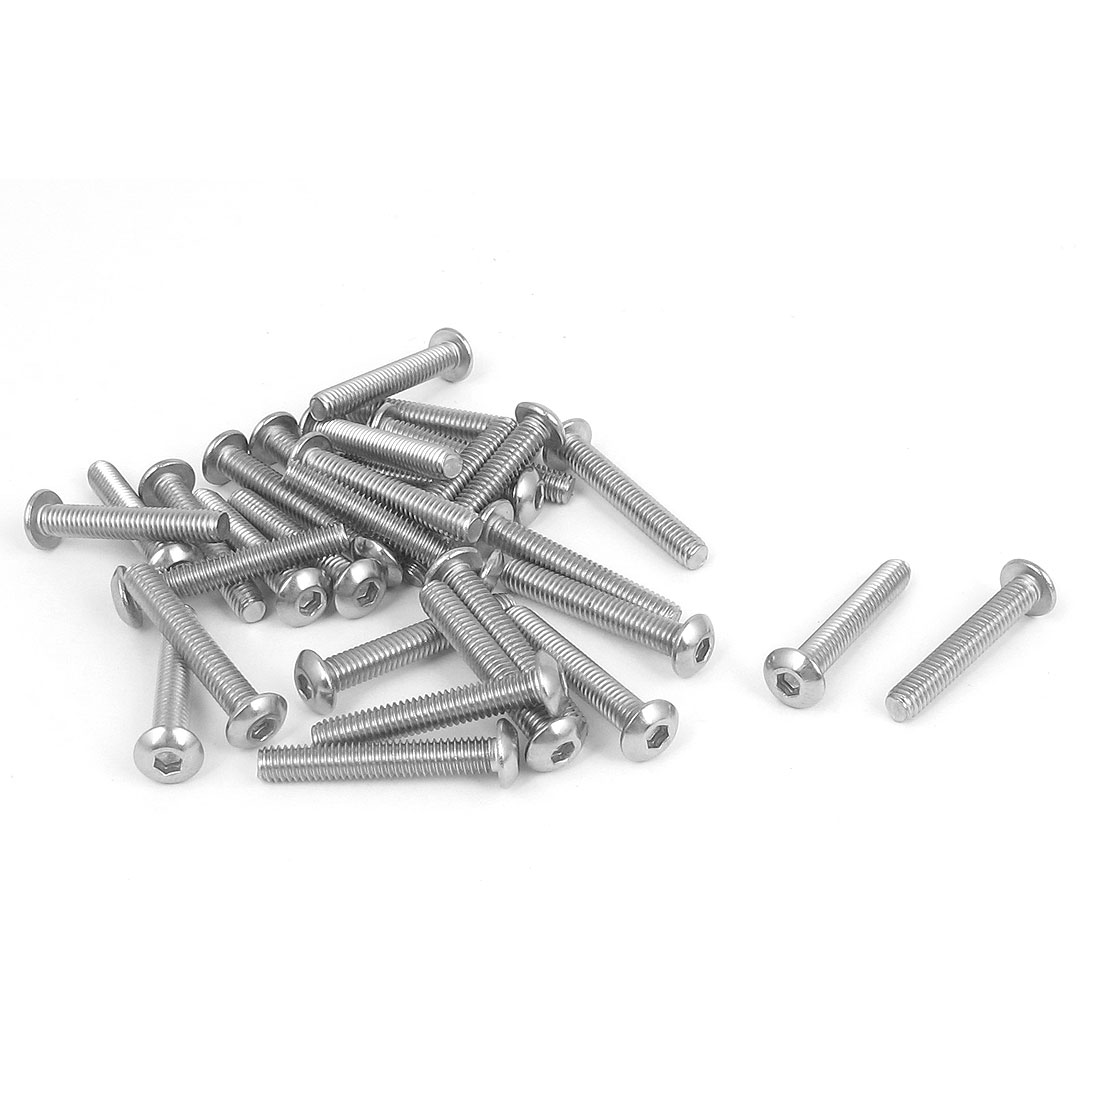 M4x25mm 304 Stainless Steel Hex Socket Machine Countersunk Round Head Screw Bolts 30PCS